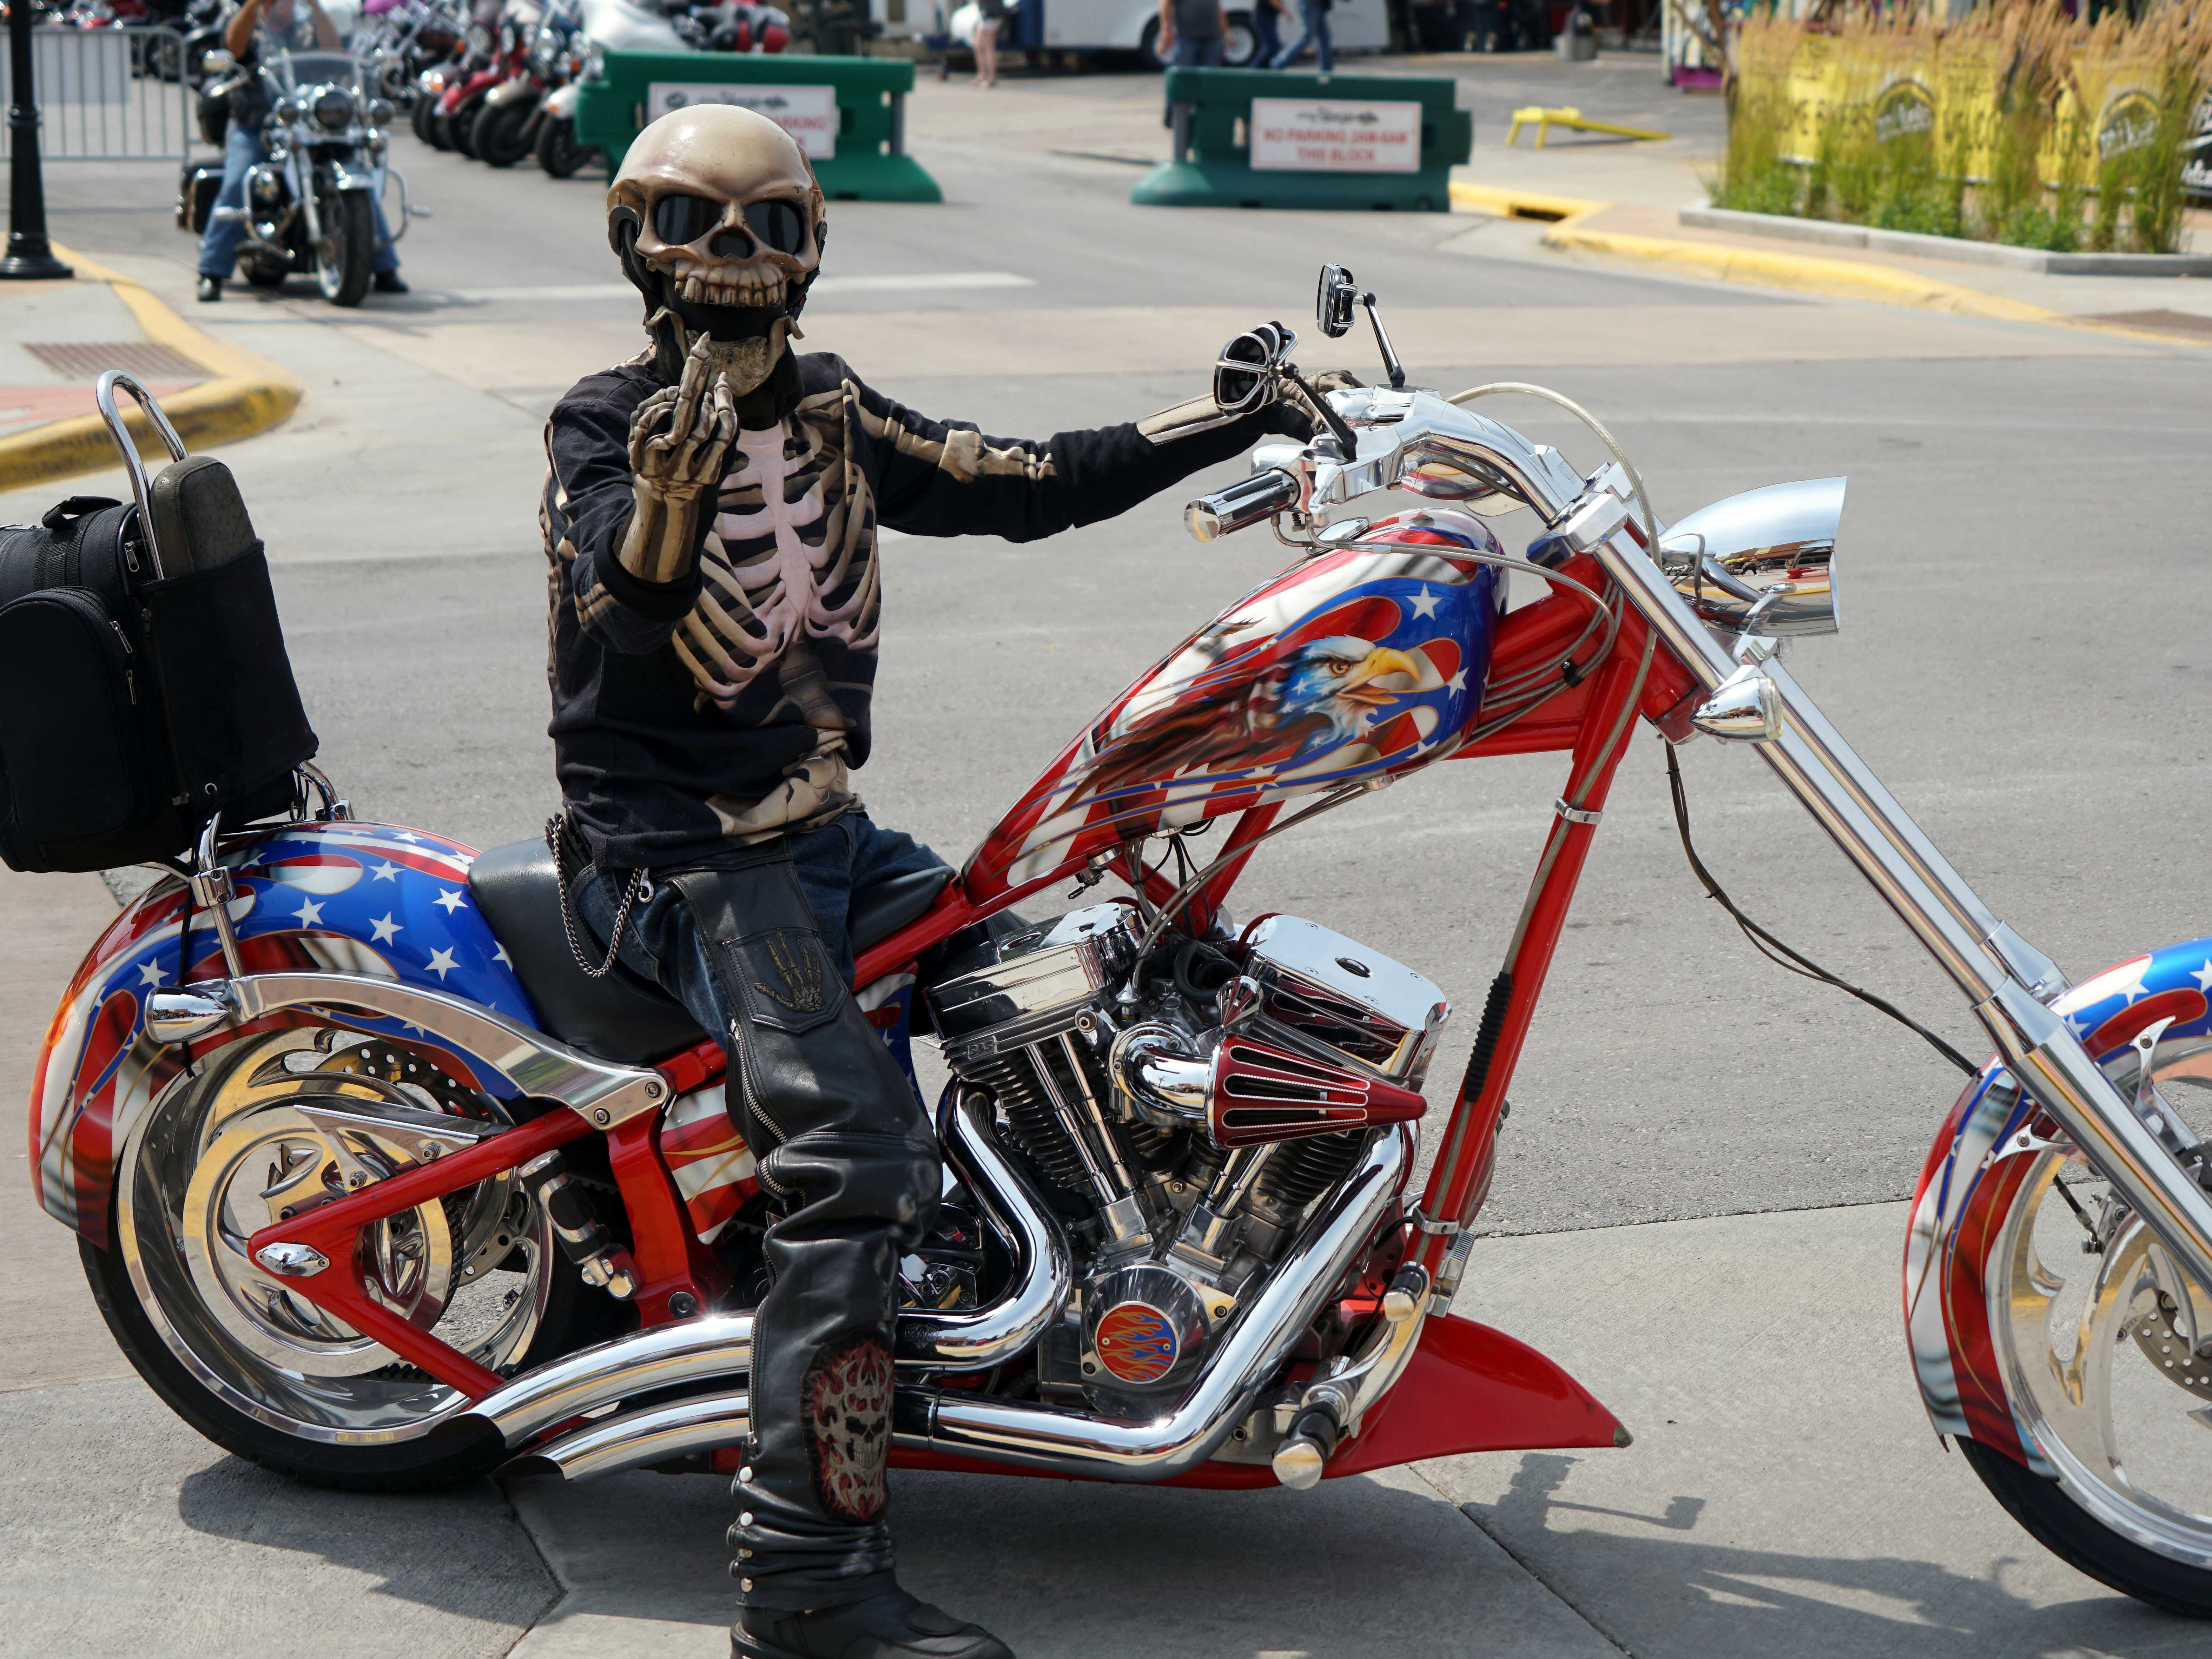 2018: Both riders and bikes are customized for the Sturgis rally.